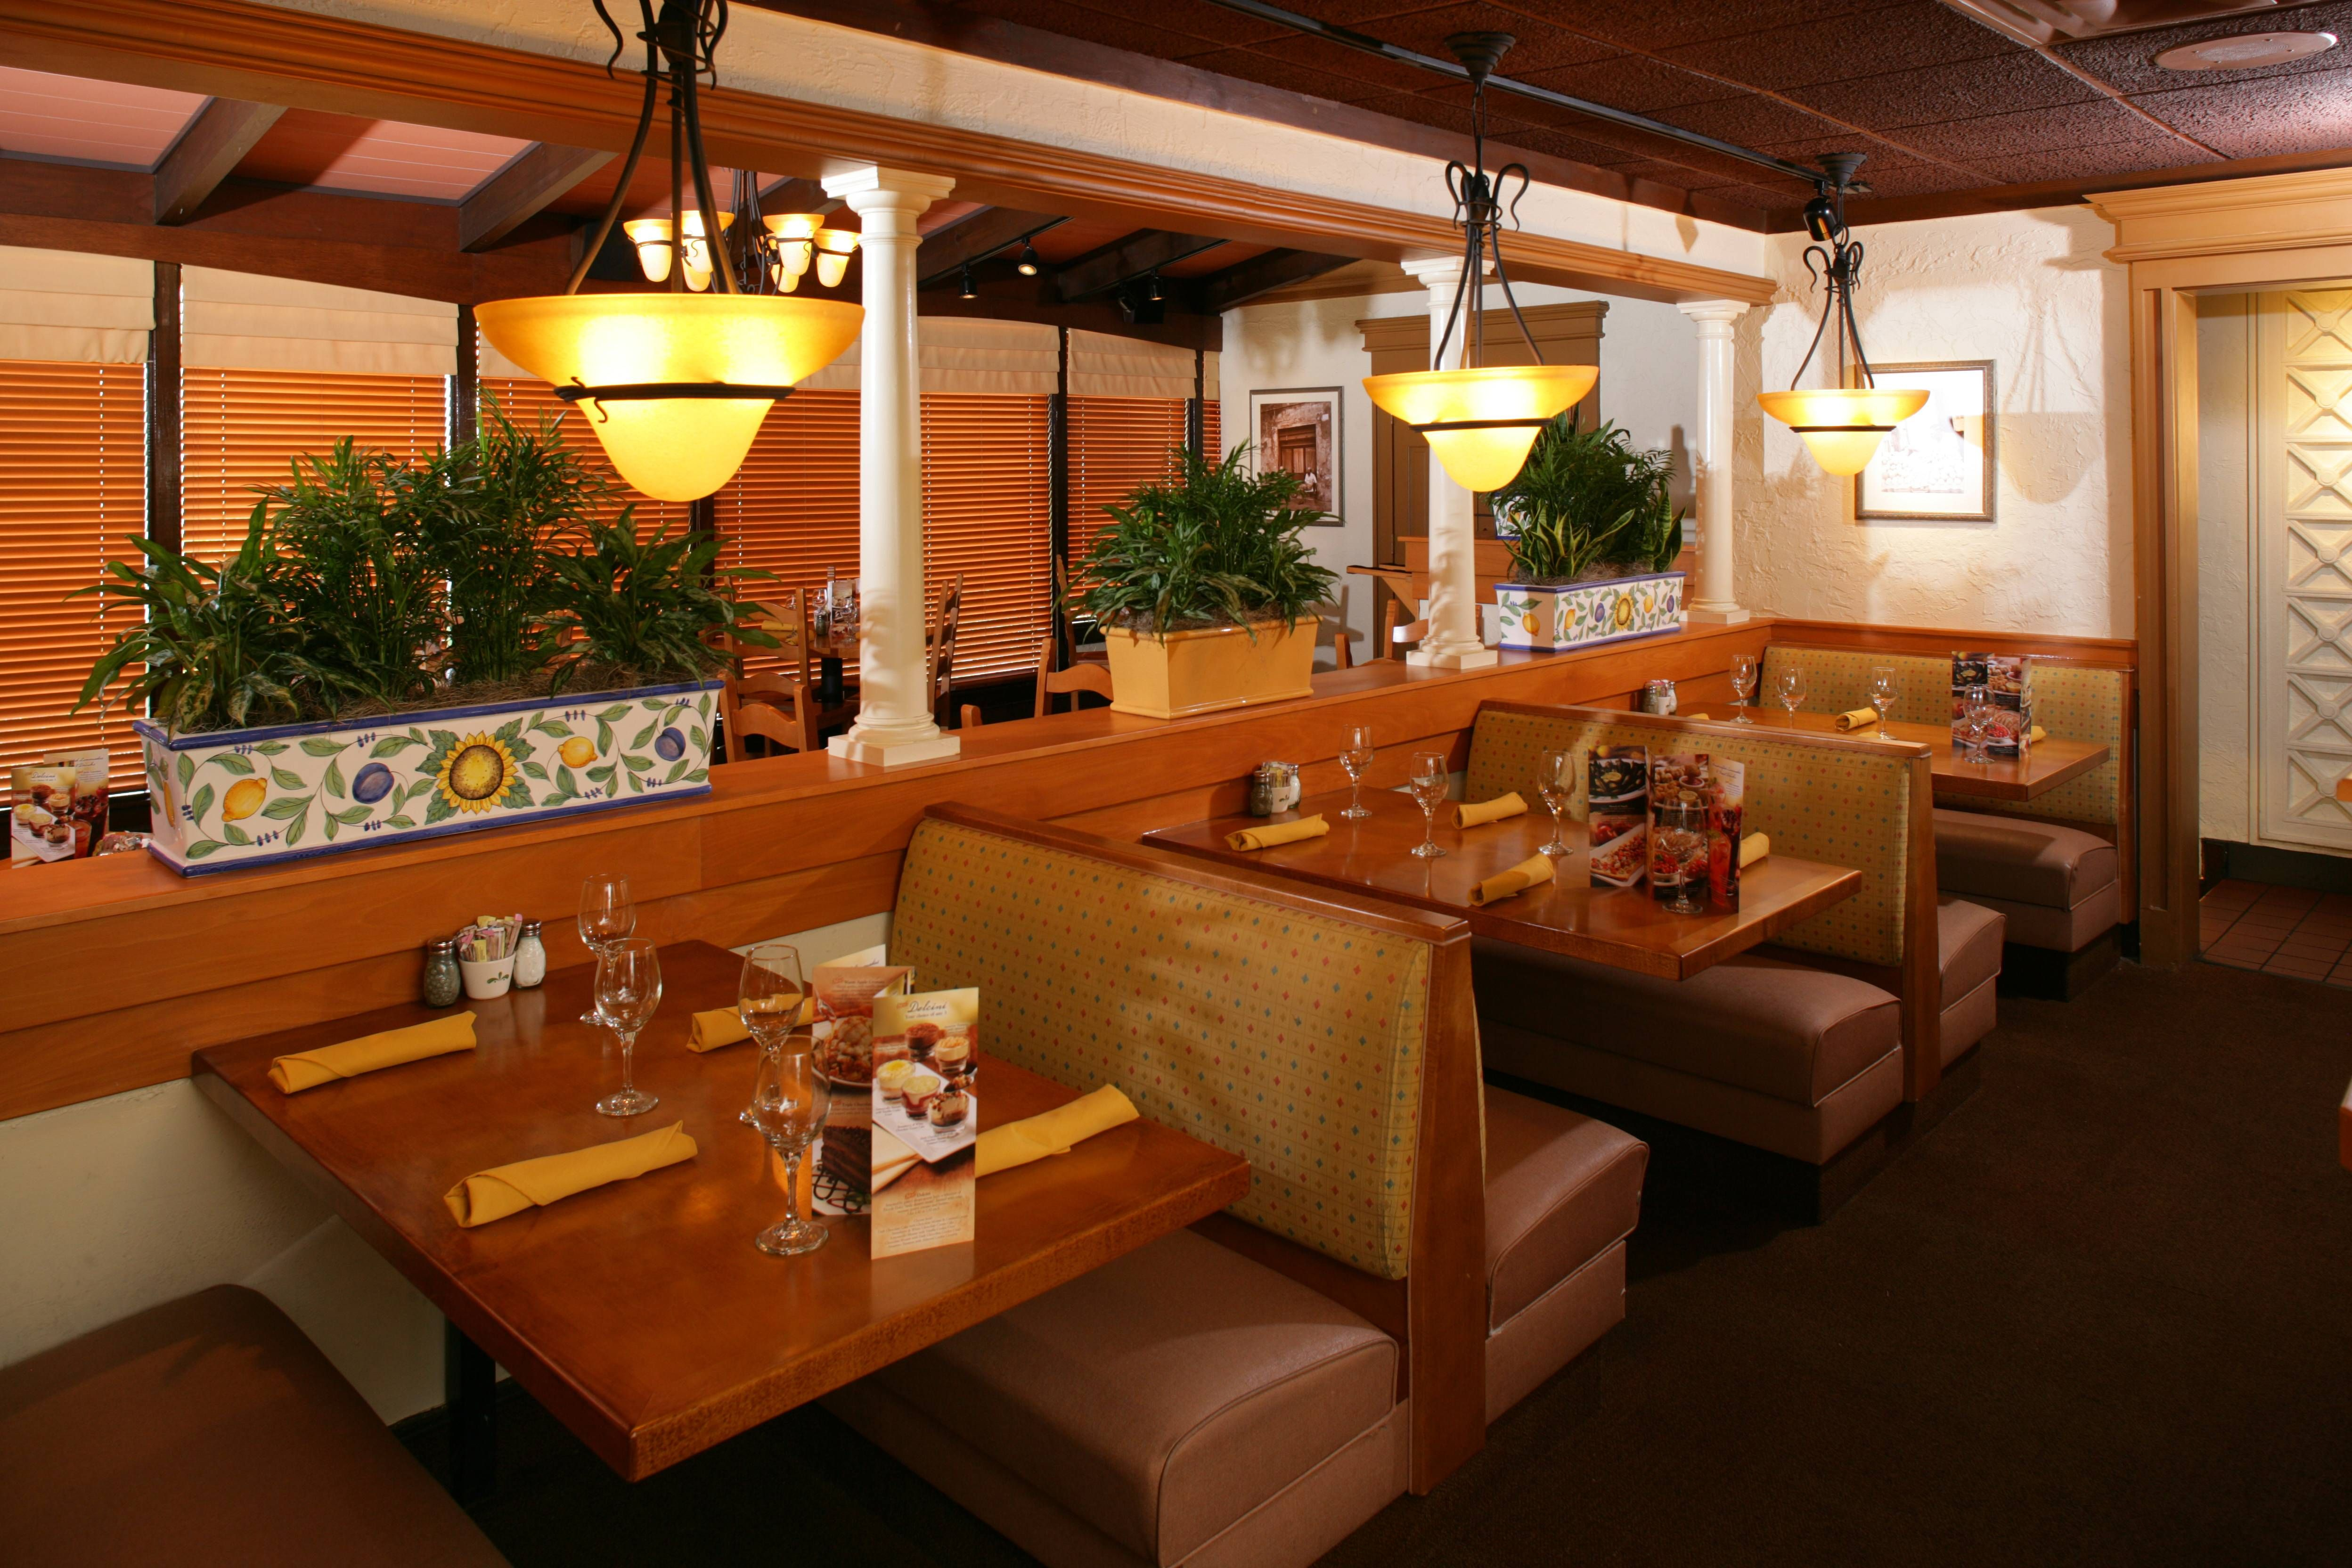 Olive Garden Dining Room 11.8 Carrabba's and Olive